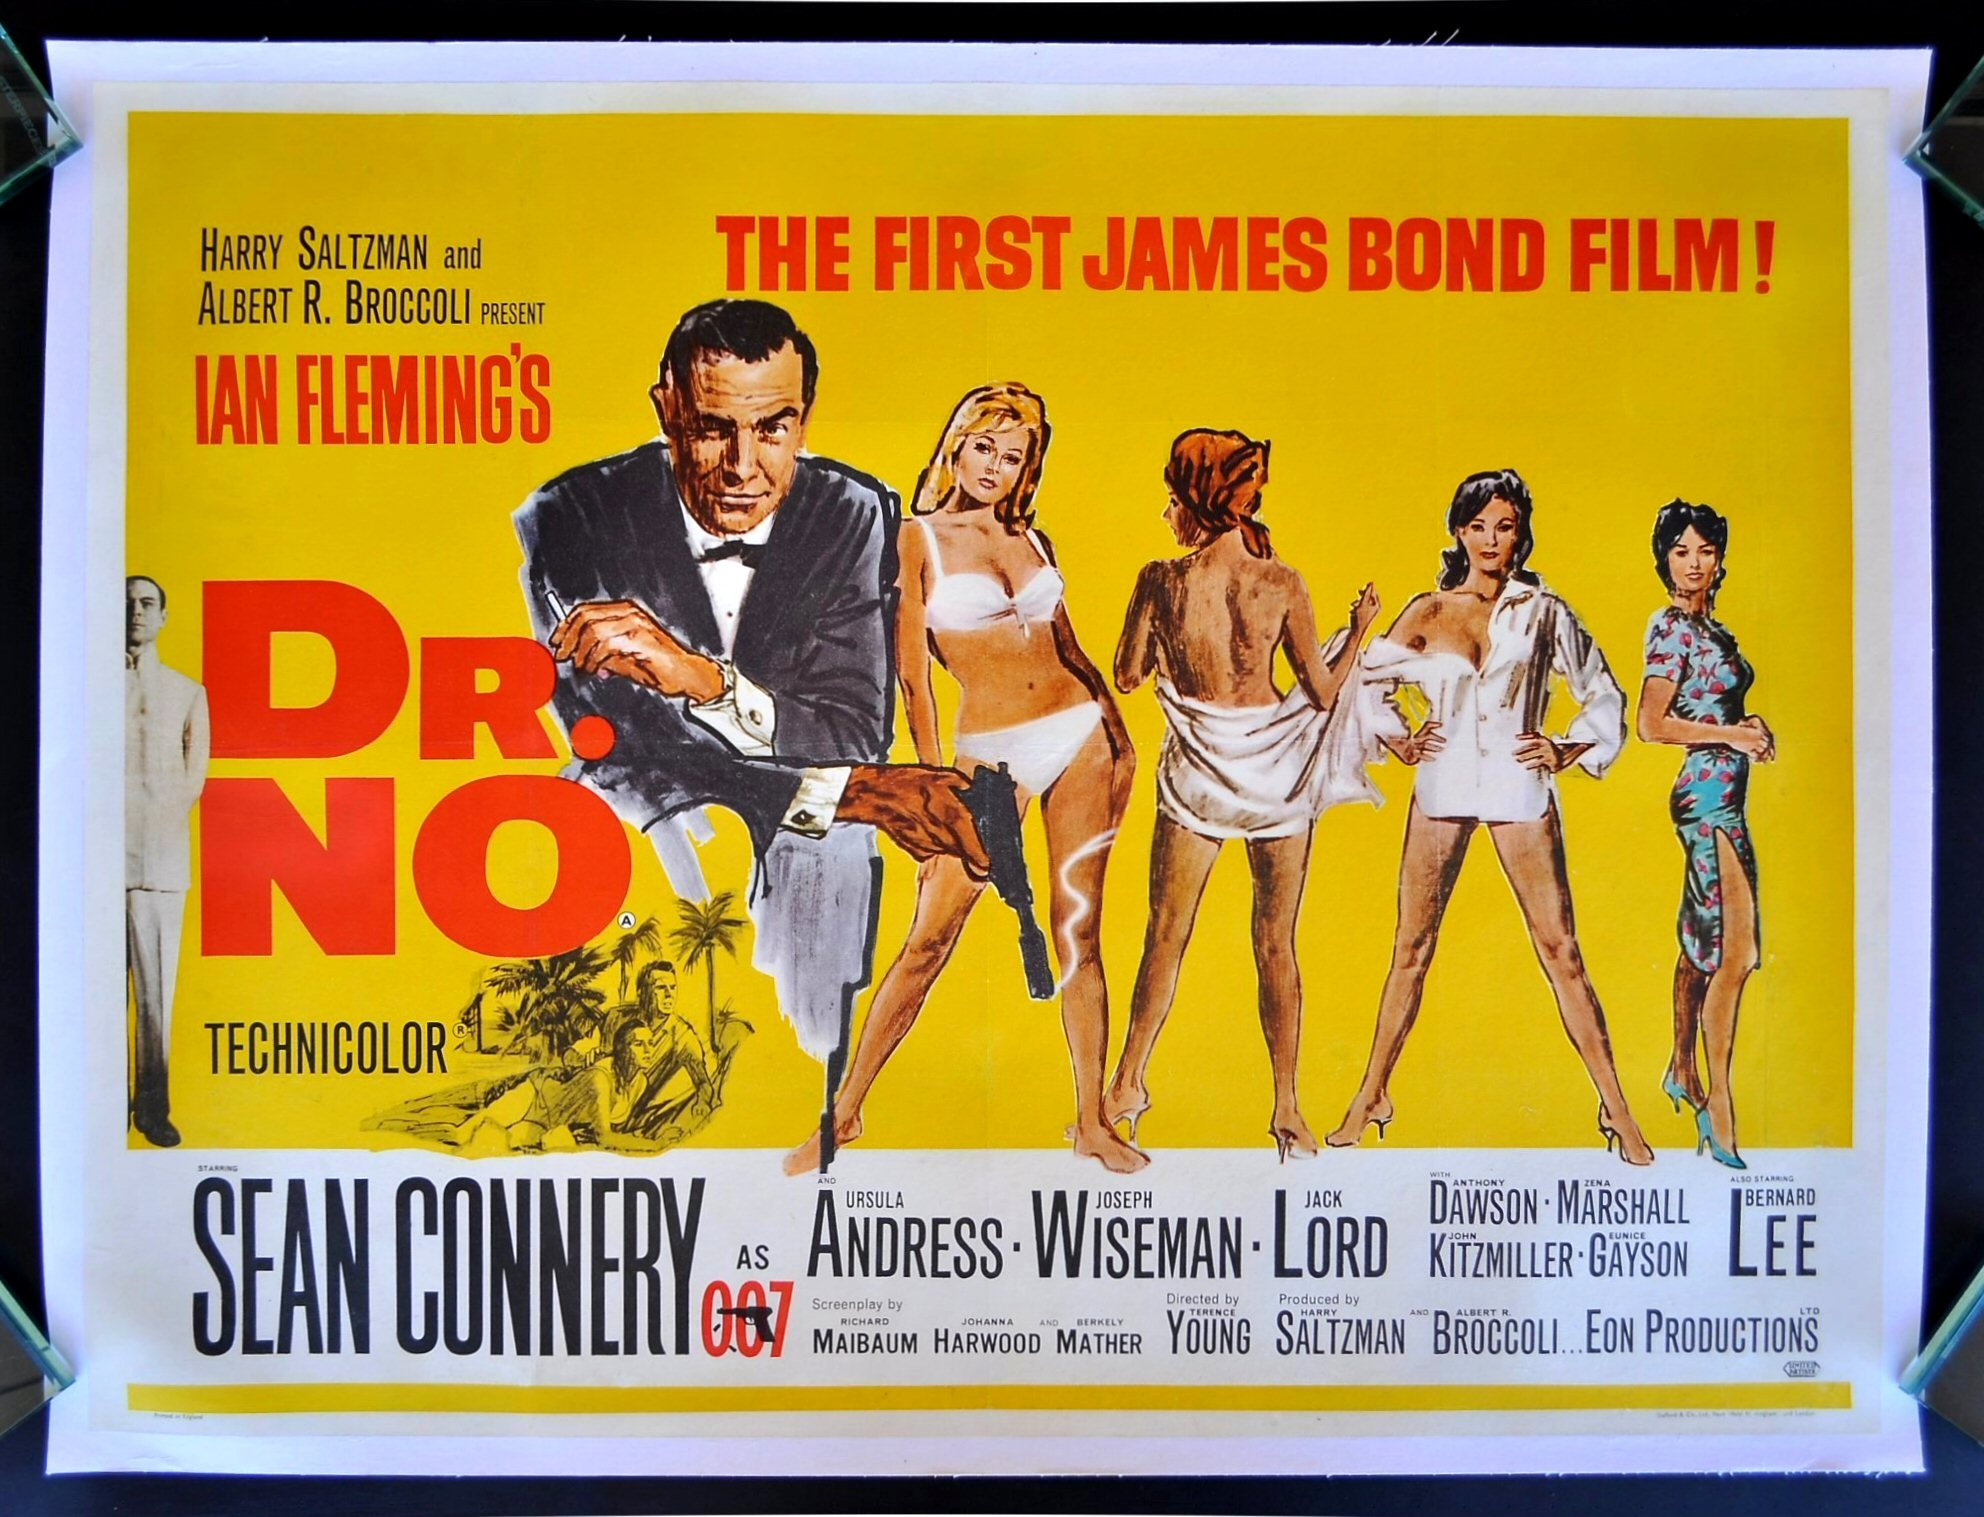 VINTAGE MOVIE POSTER OF THE DAY